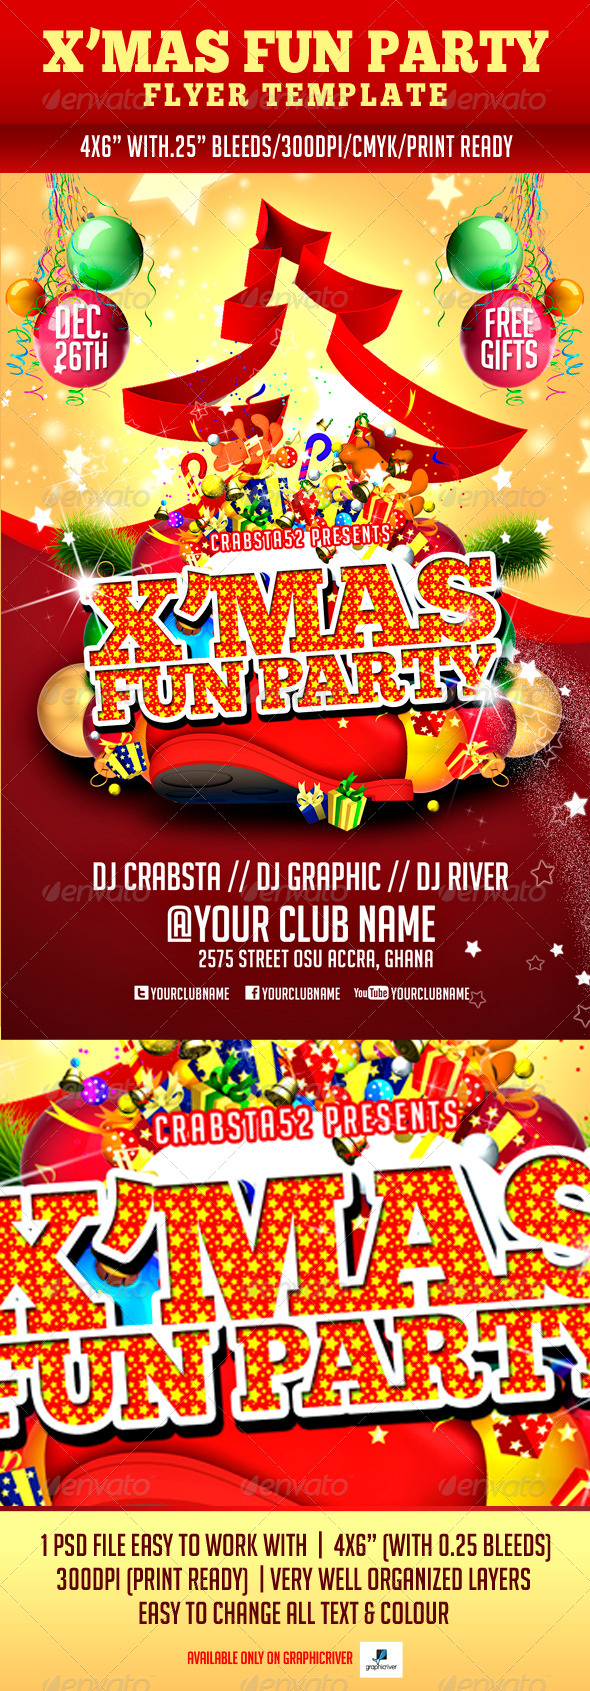 GraphicRiver X mas Fun Party Flyer Template 6170589